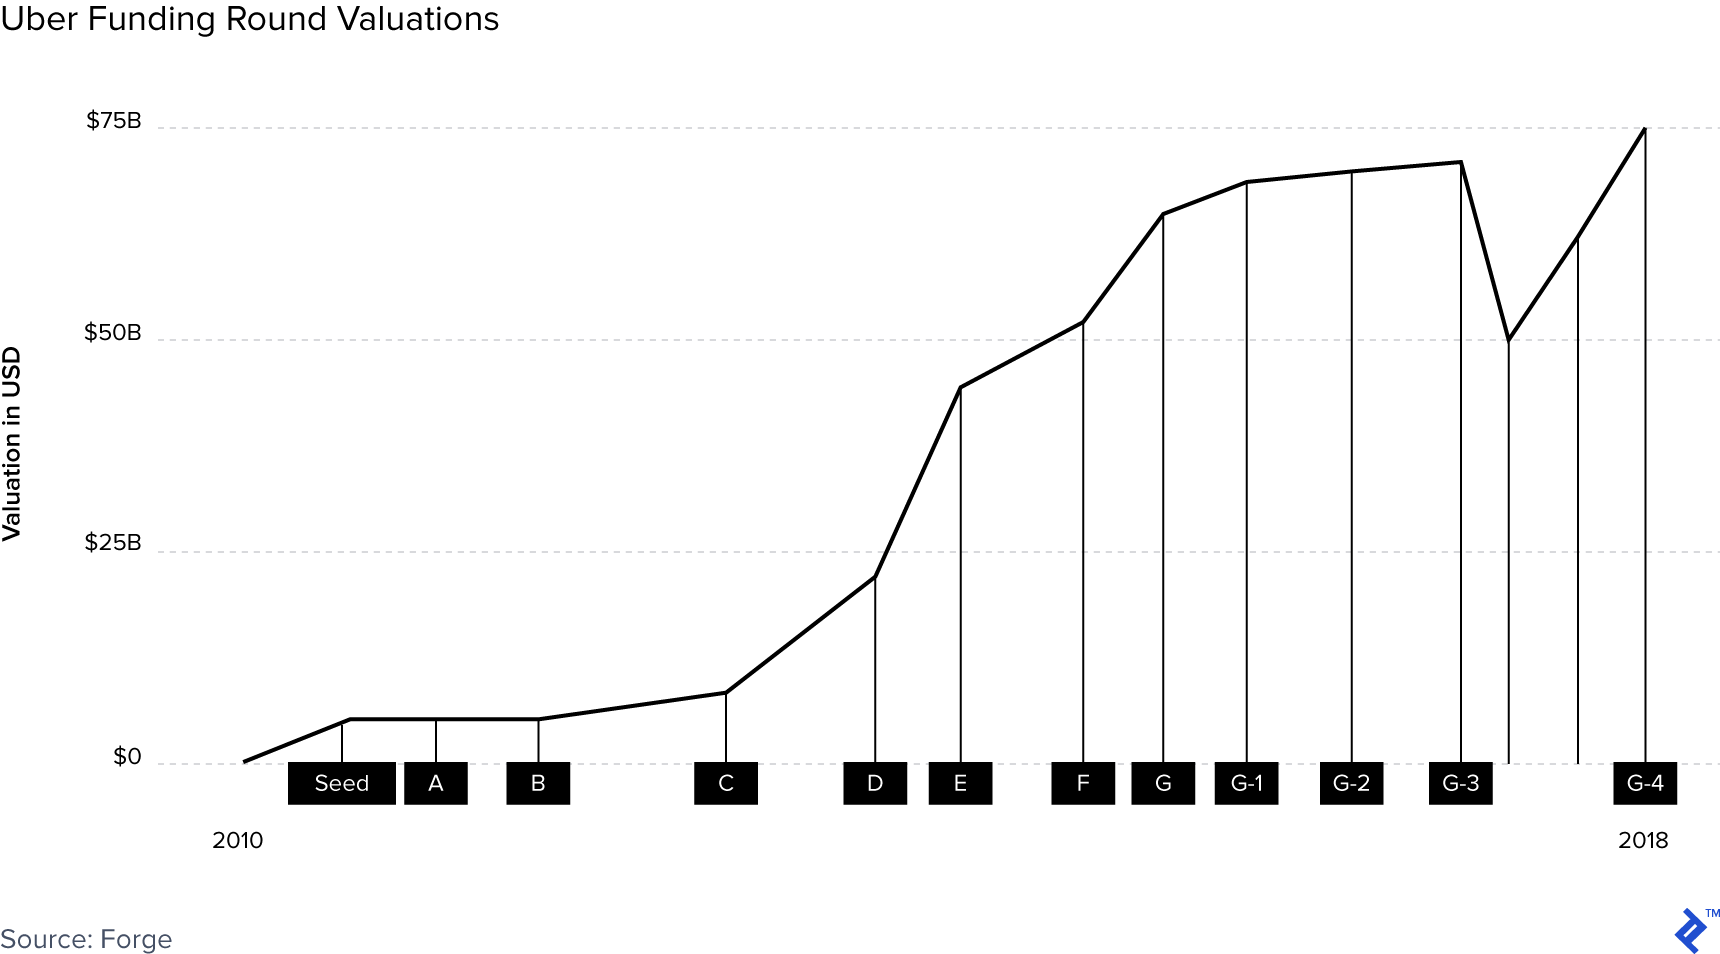 Graph illustrating Uber's funding round valuations.